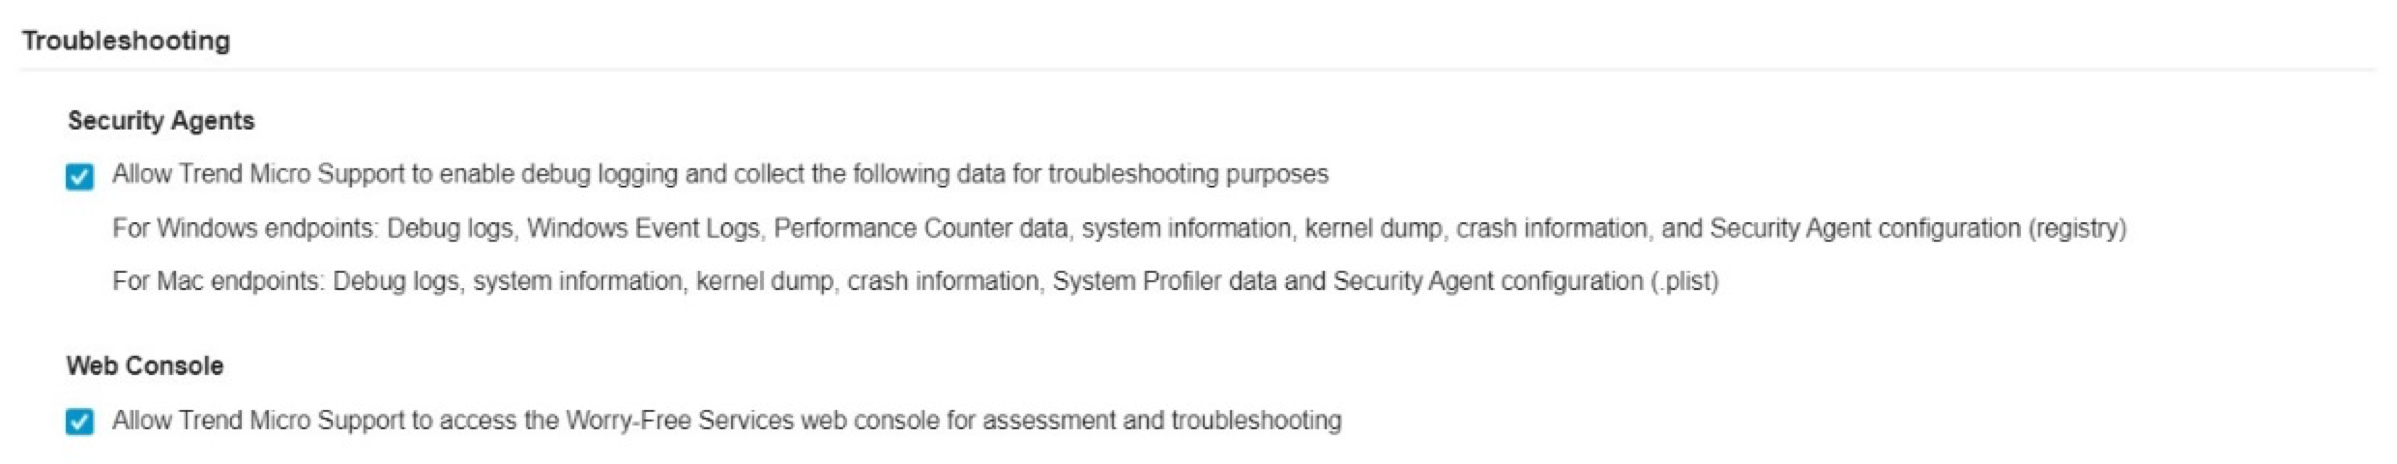 Troubleshooting Settings